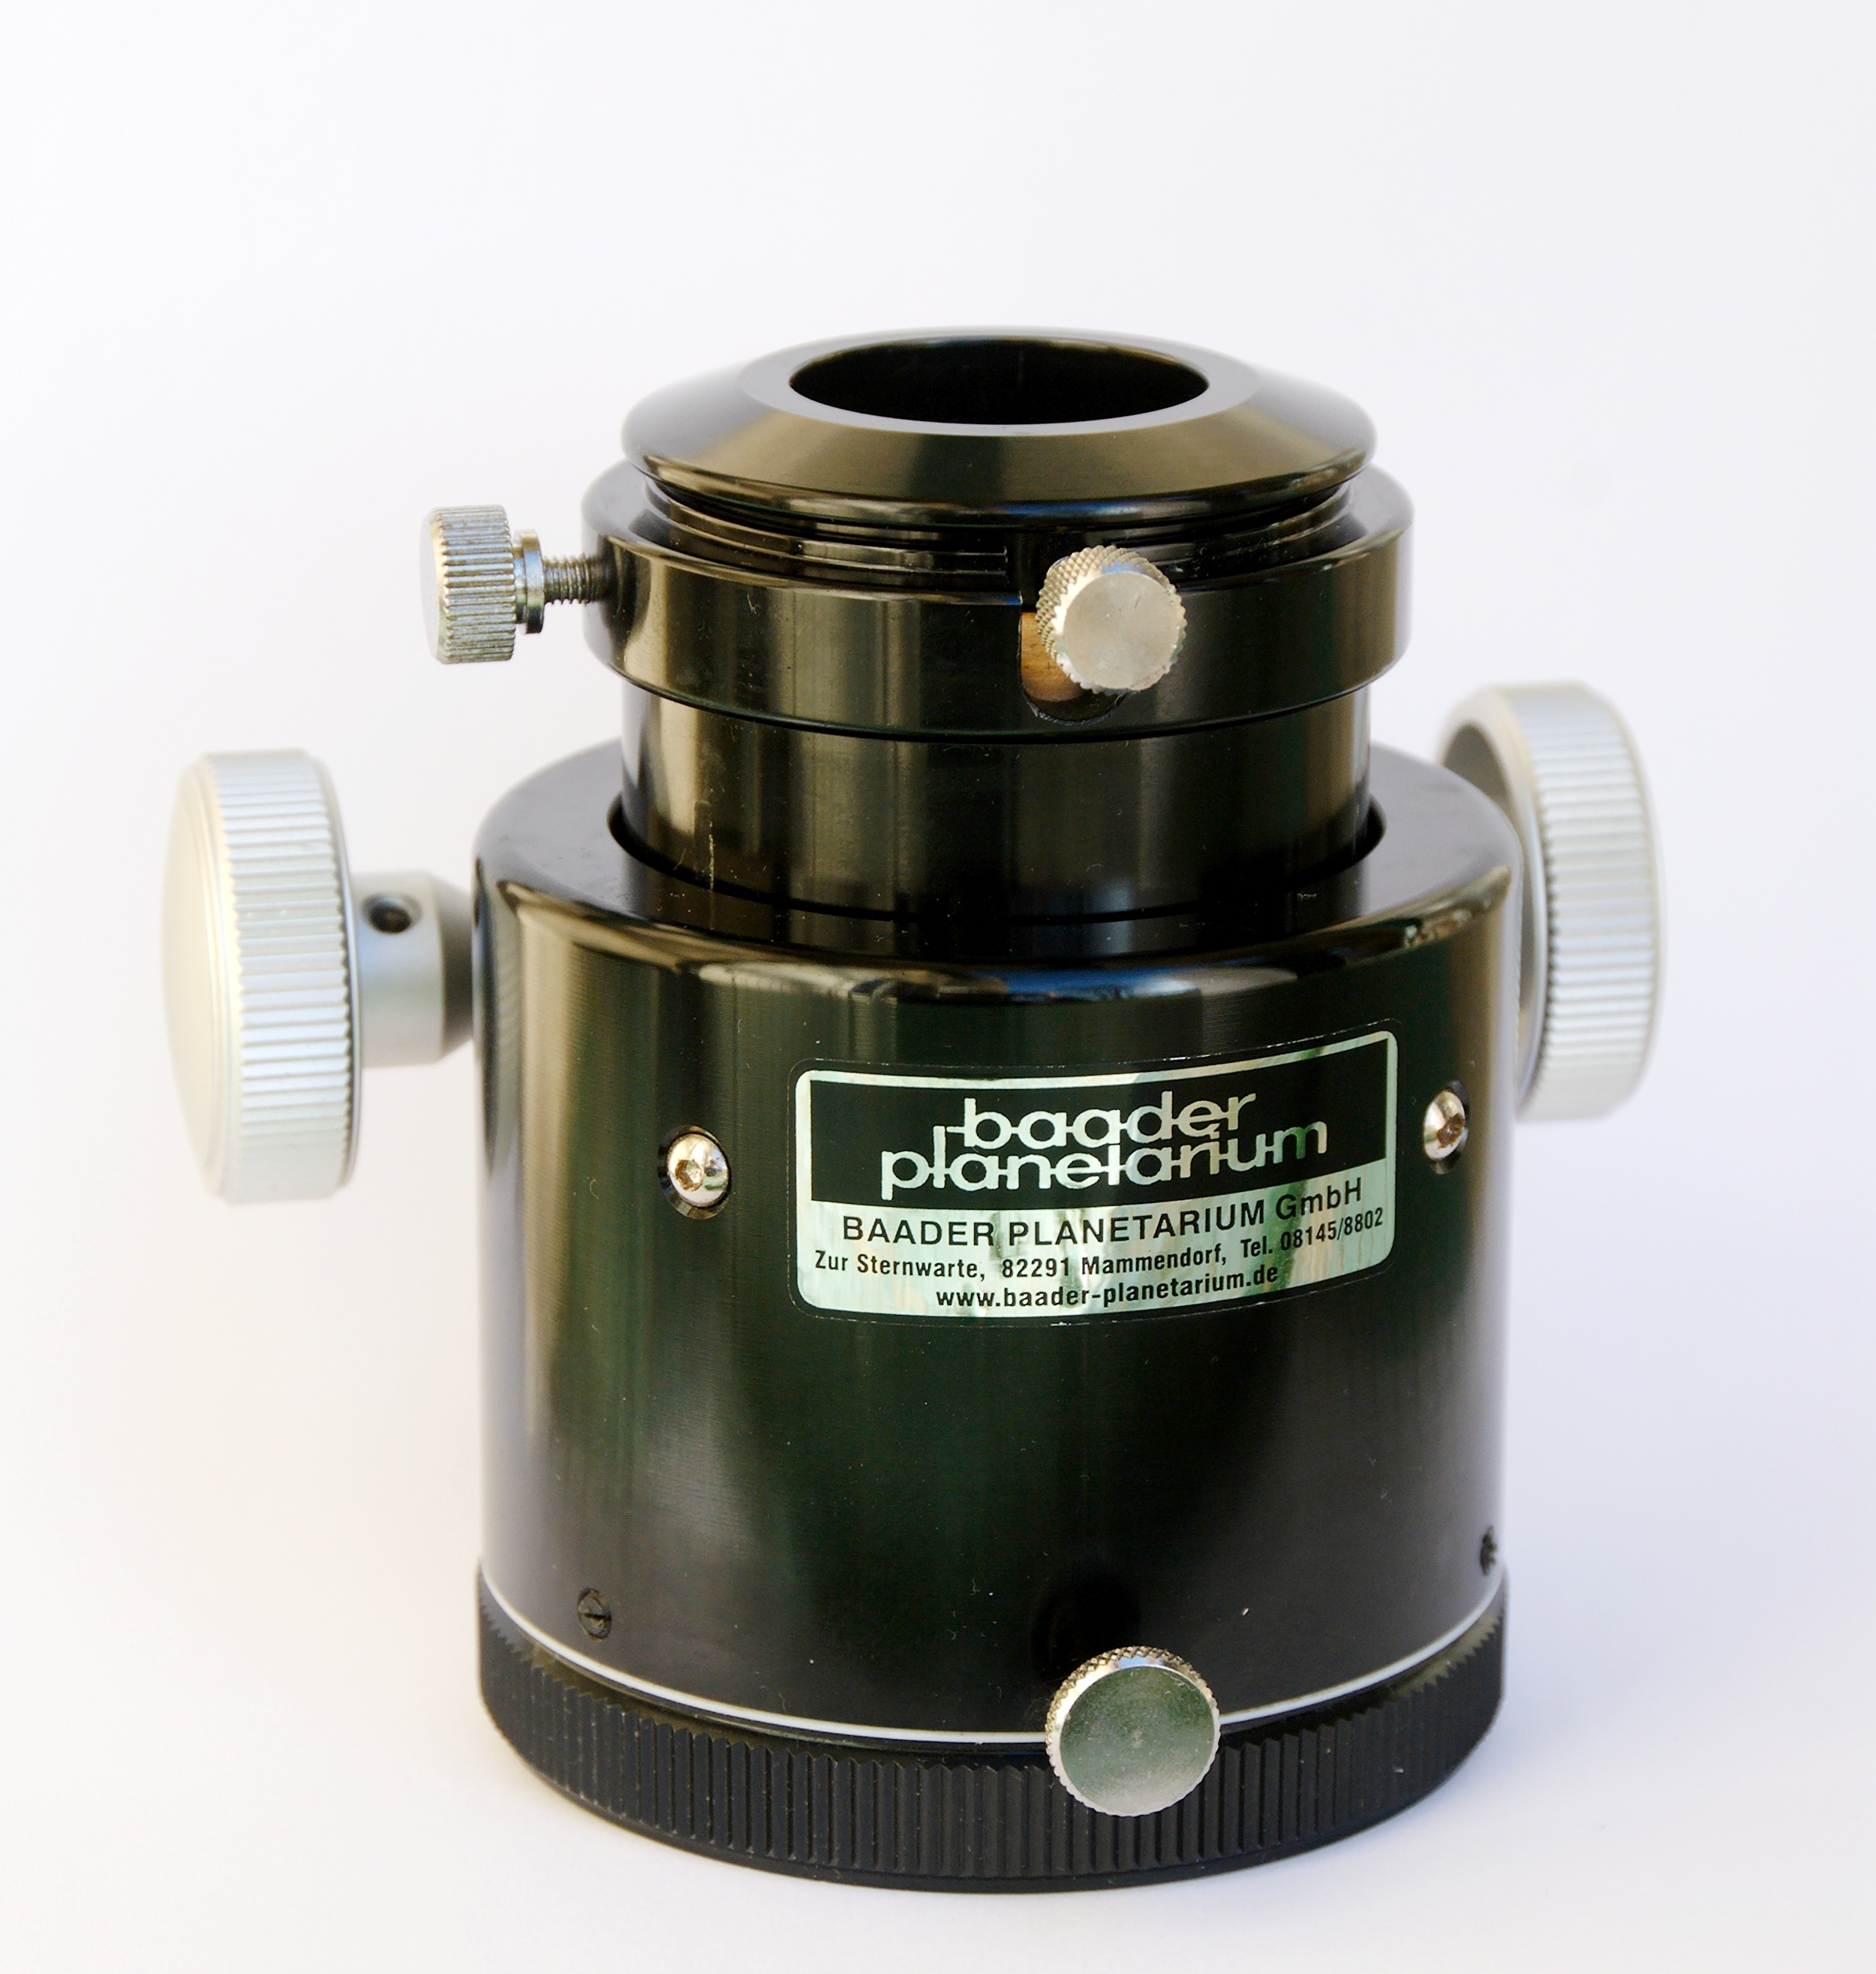 Baader SCT focuser - any good? - Discussions - Scopes / Whole setups